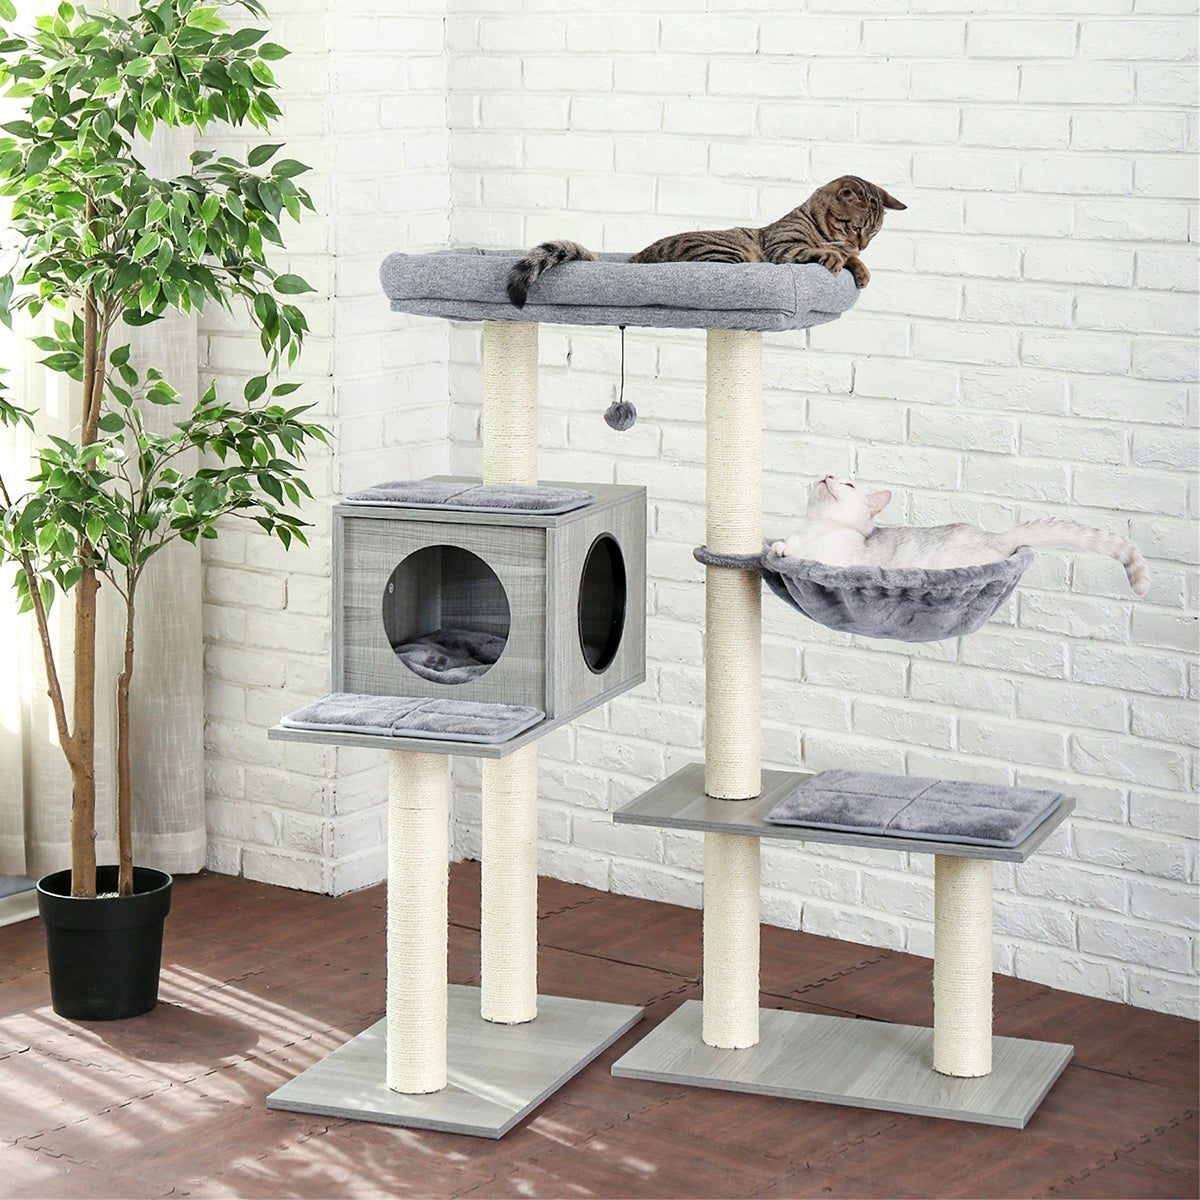 Merax 5 Levels Modern Cat Tree Varied Styles Cat Tower With 7 Sisal Scratching Posts Deep Hammock And Extra Large Perch Gray On Sale Overstock 32531084